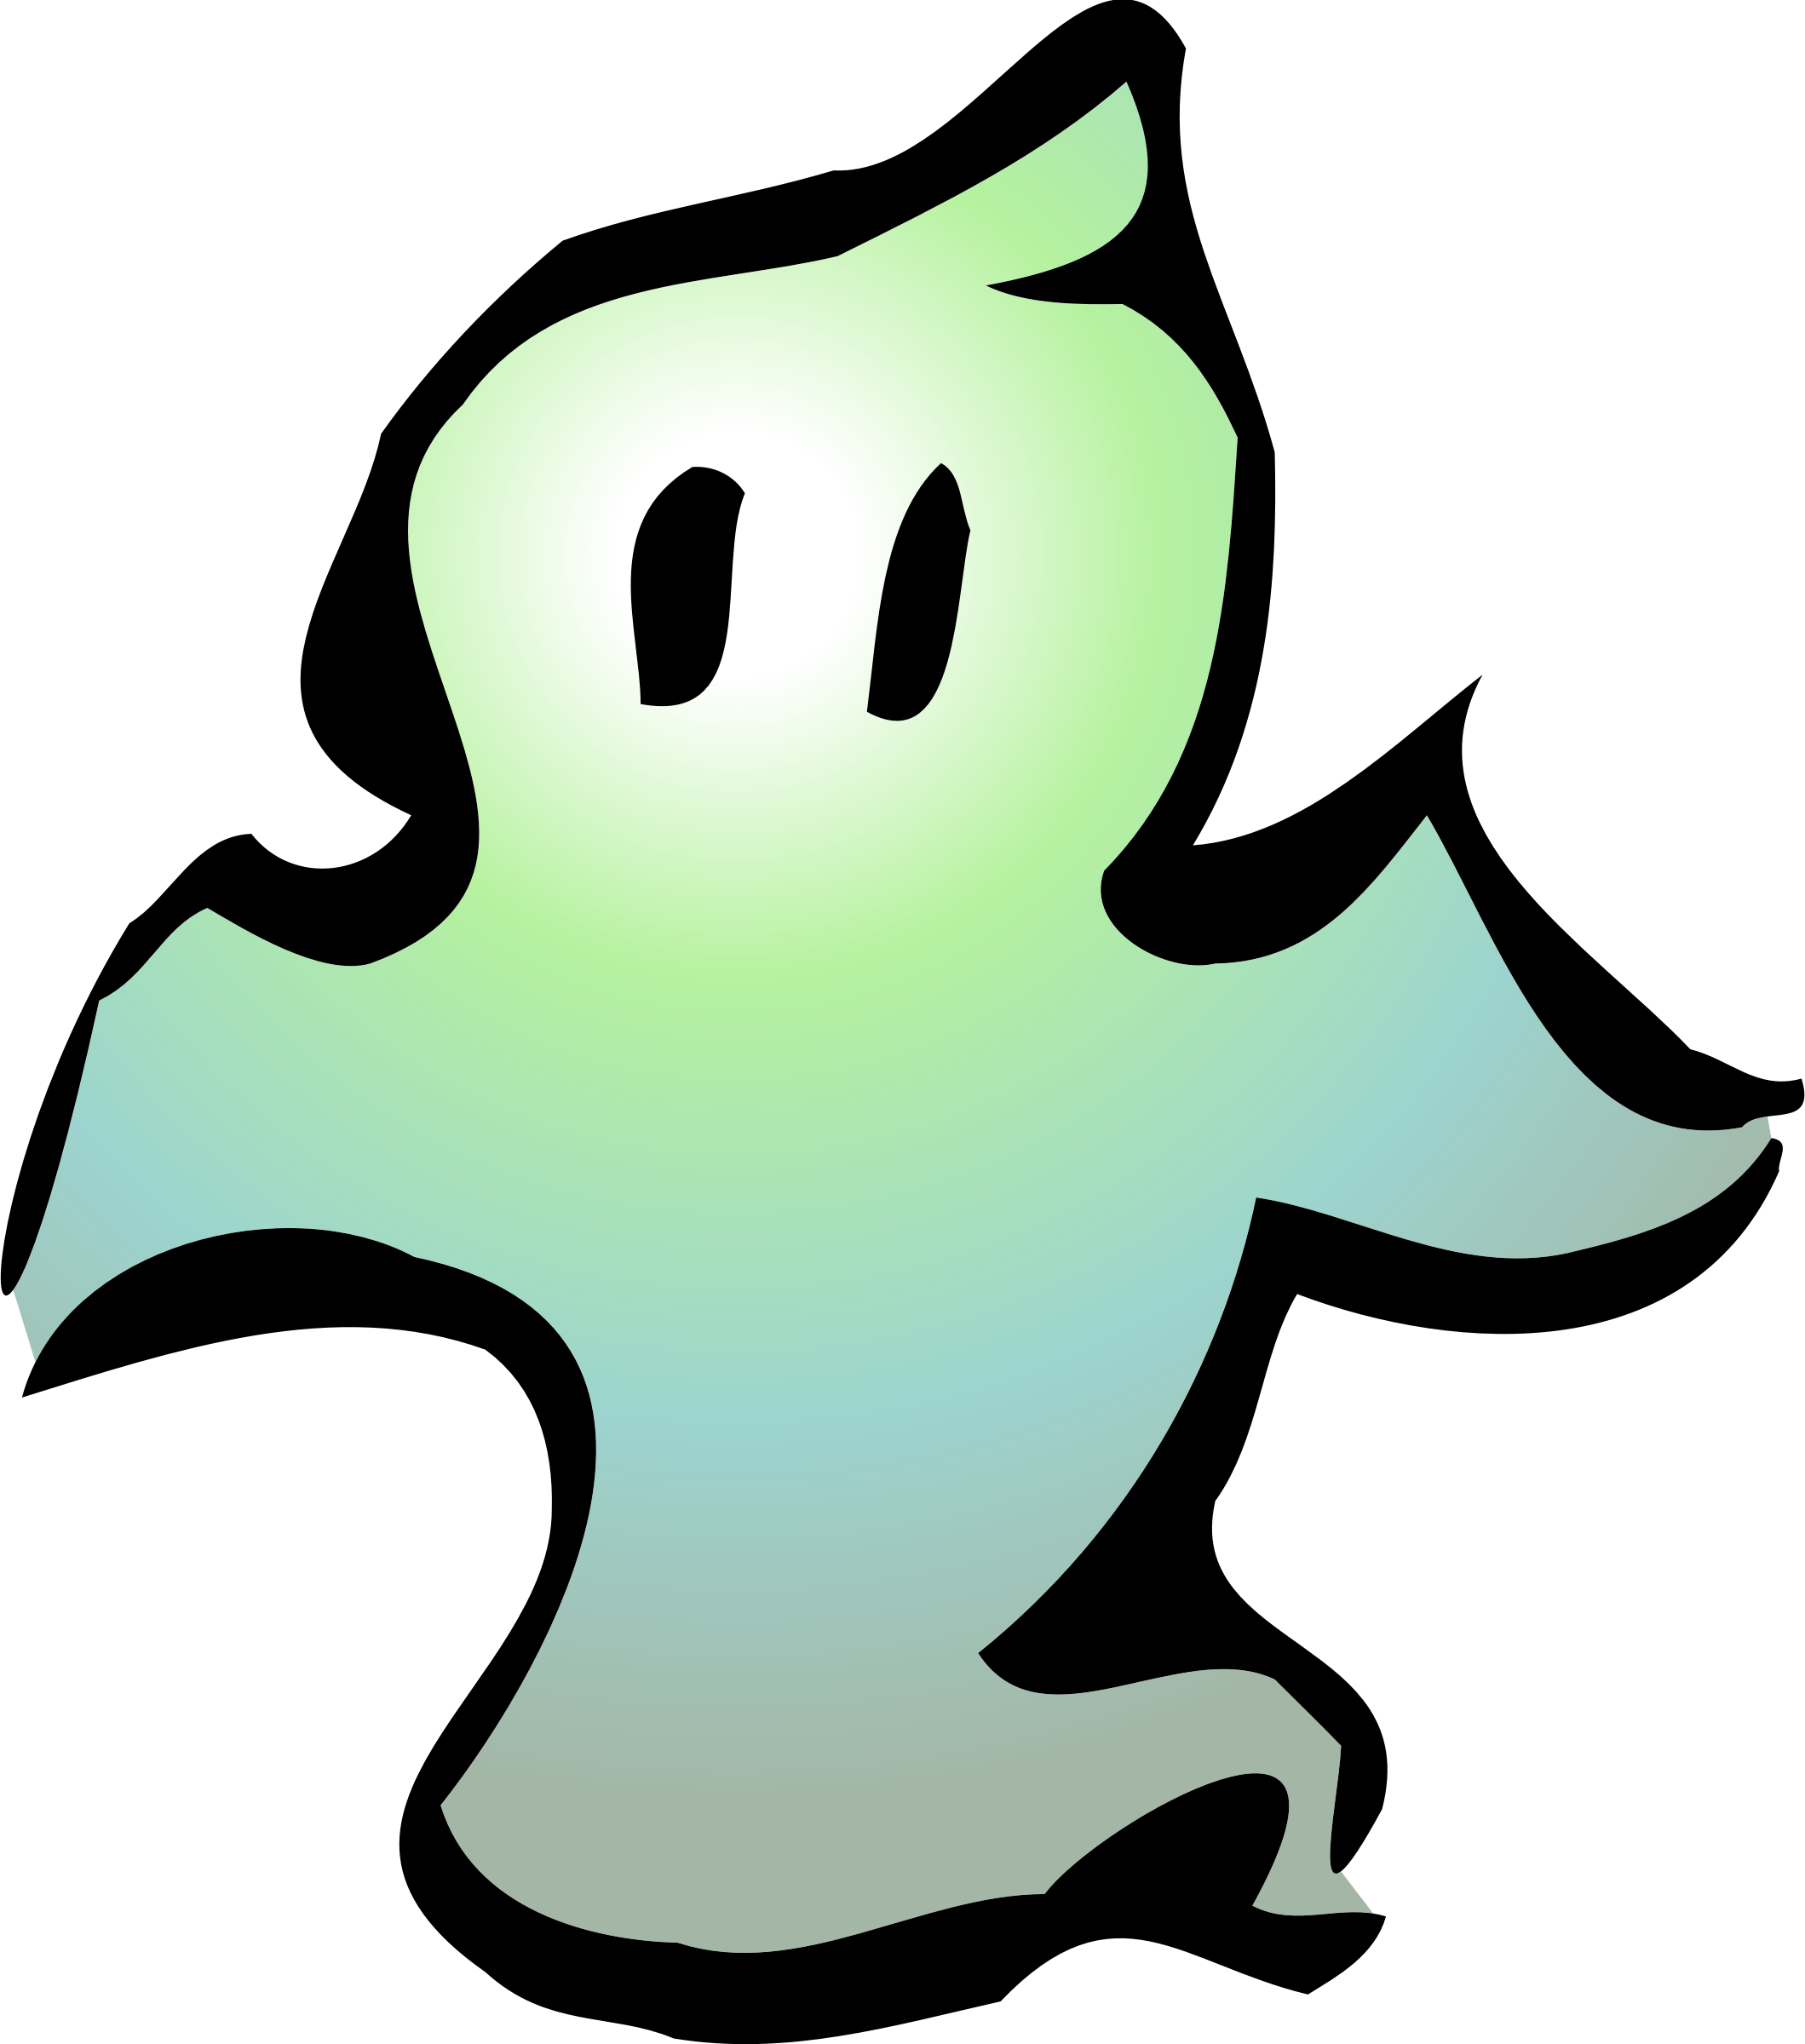 Ghost Free PNG Images, Halloween Ghost, Scary Ghost, Ghost.